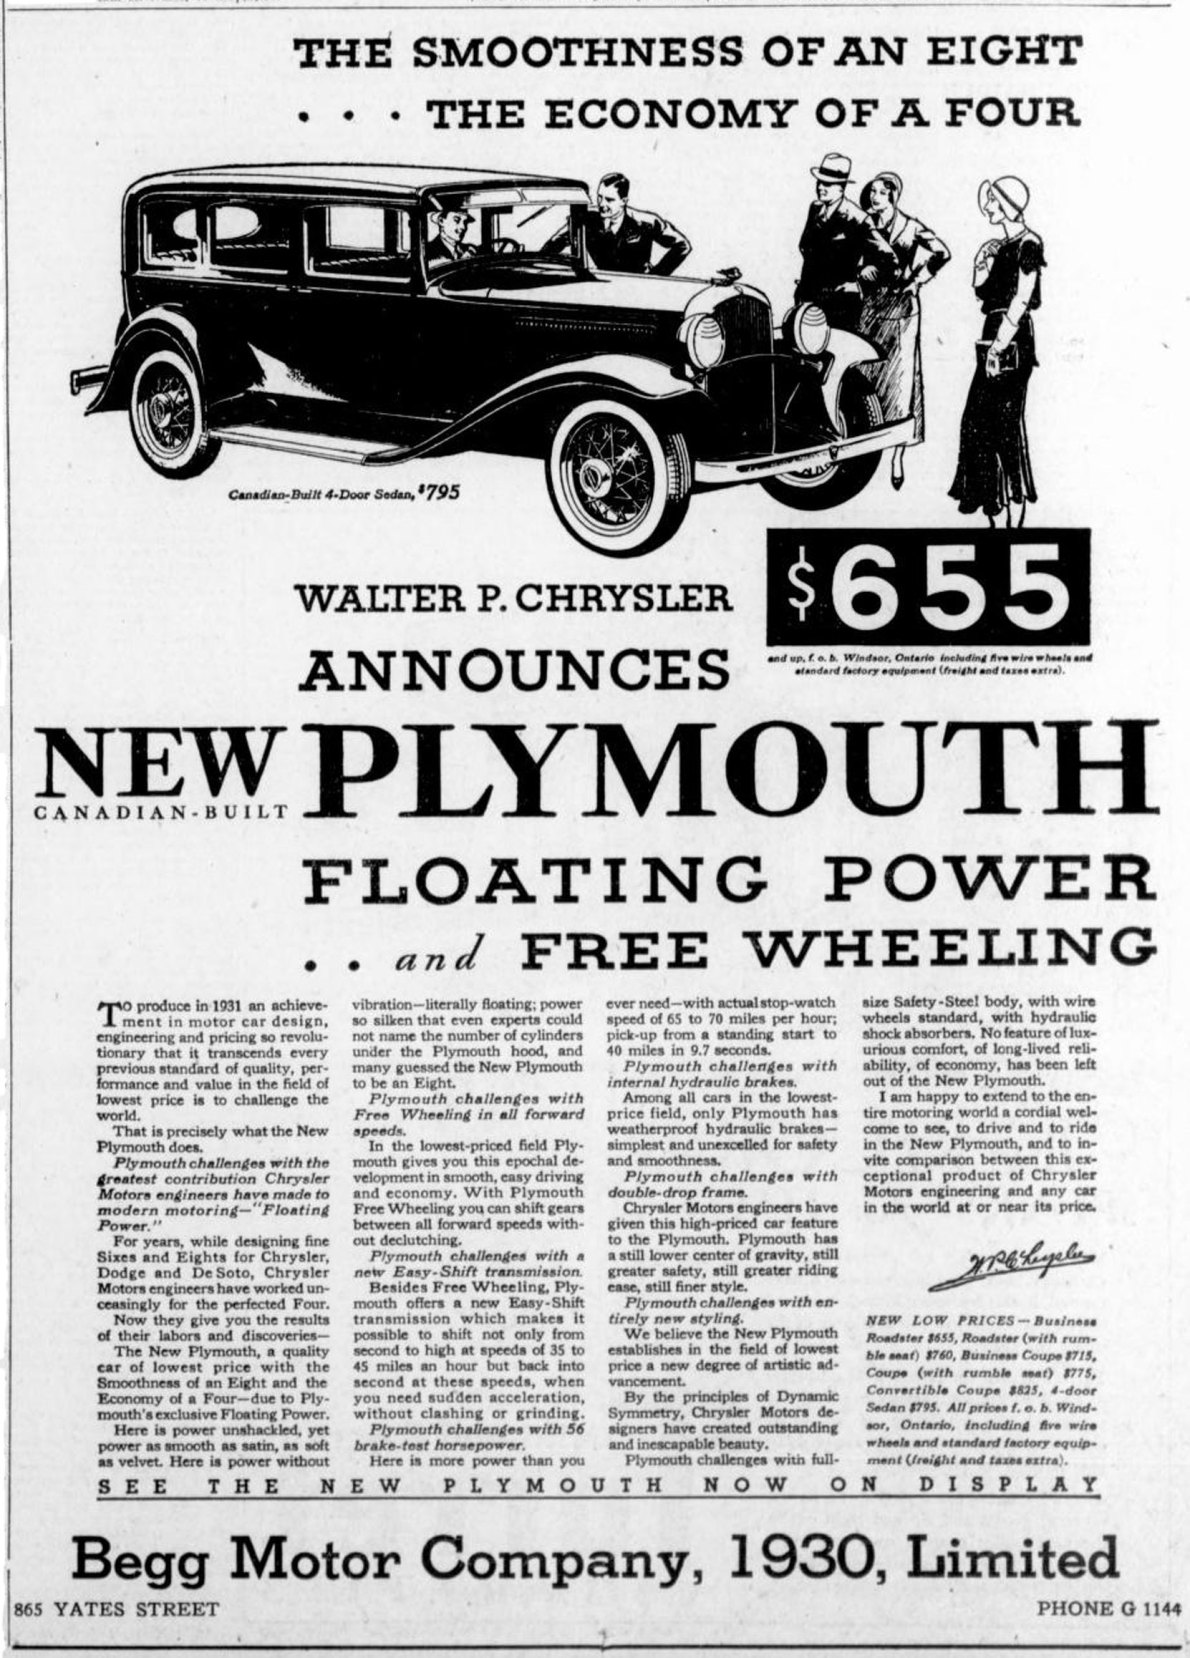 1931 advertisement for Plymouth, by the Begg Motor Company Ltd, 865 Yates Street Victoria Online Sightseeing Tours collection)